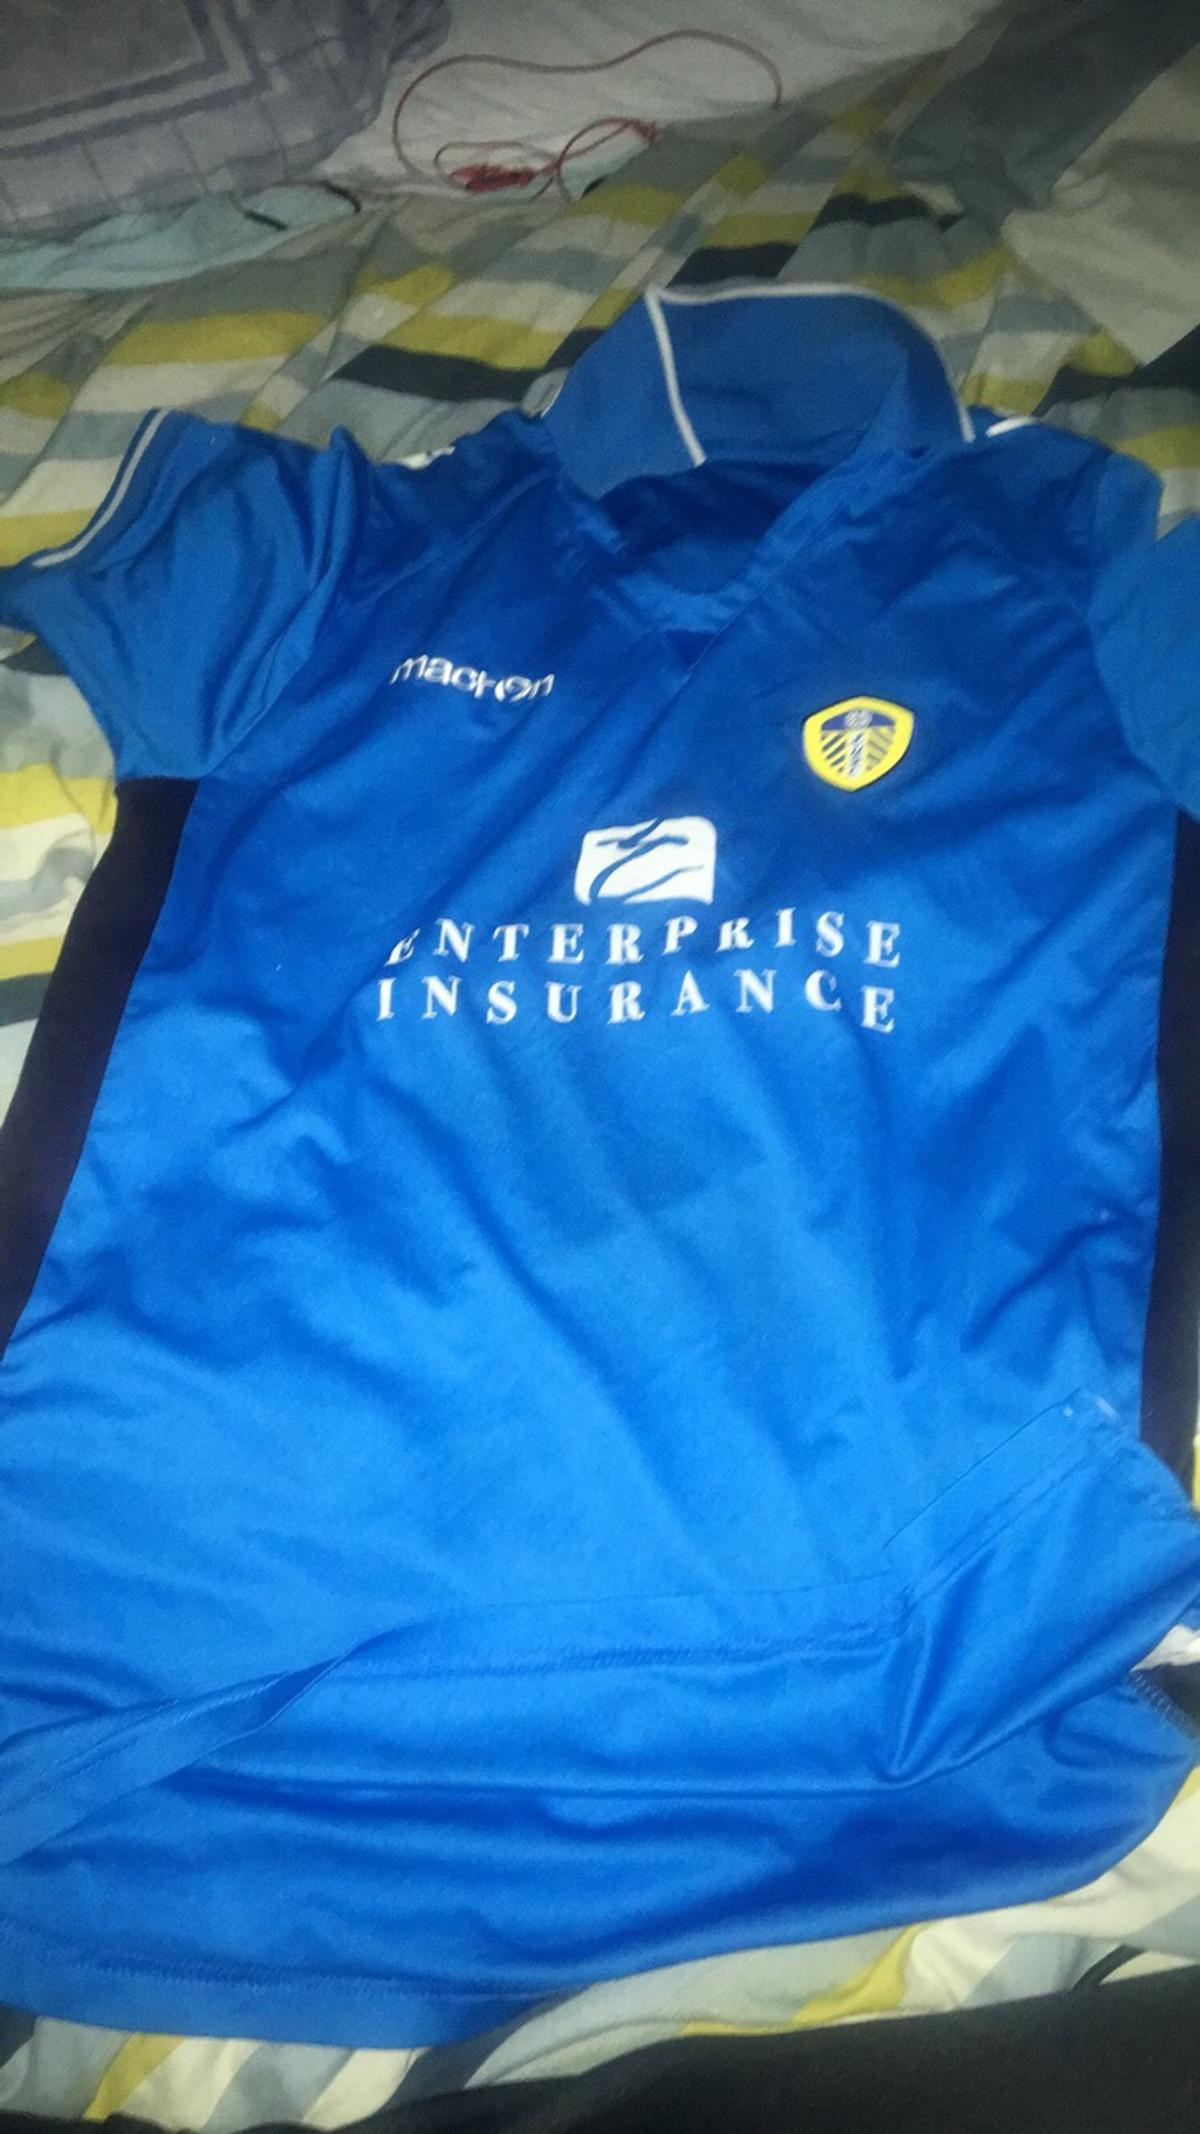 Old Leeds United Away Kit In Ll53 Pwllheli For 15 00 For Sale Shpock